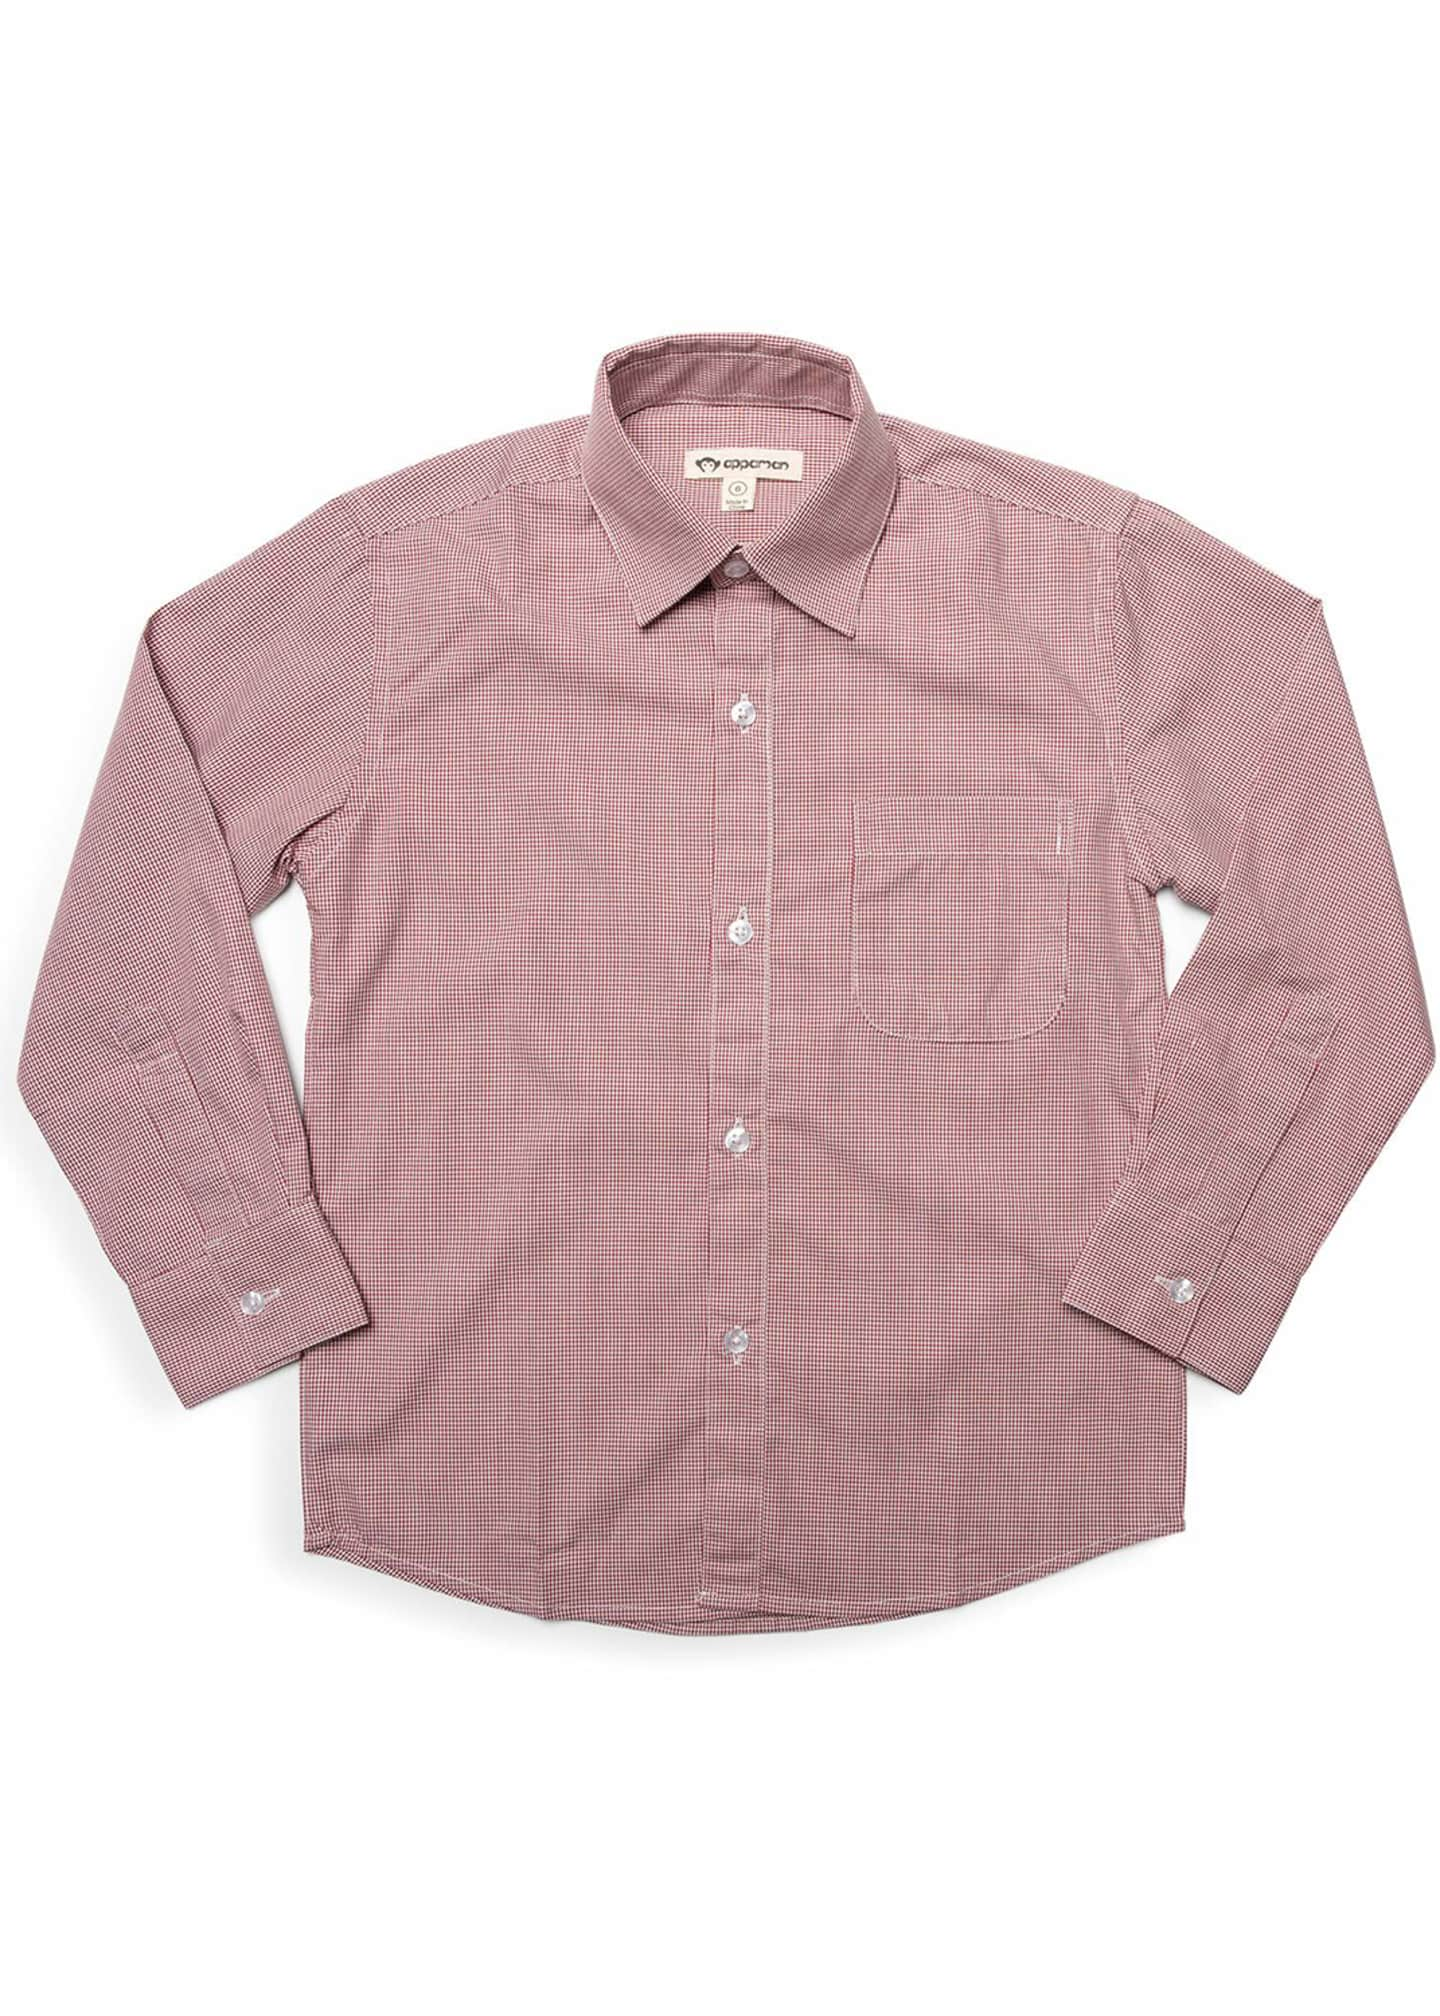 Boy's Standard Micro Grid Dress Shirt, Size 2-12